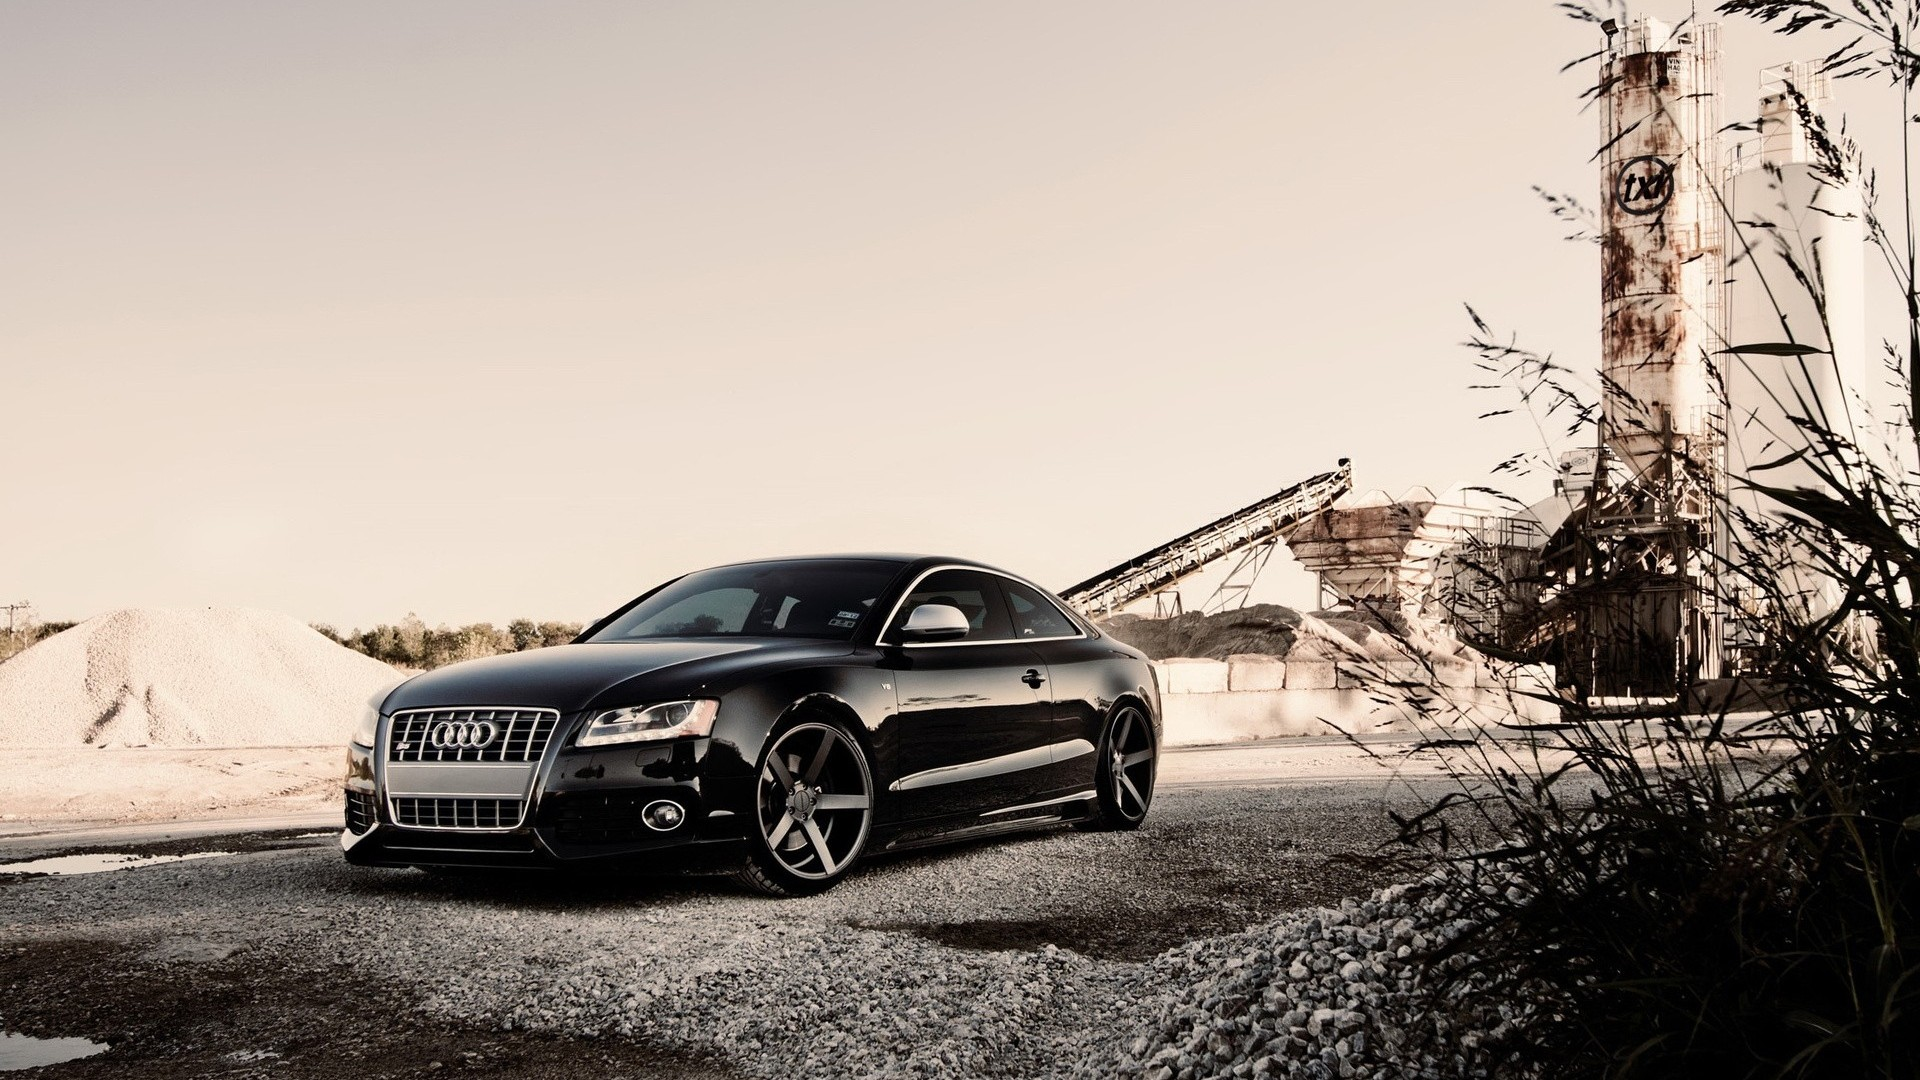 Audi Wallpaper HD Pictures Wallpapers View 1920x1080